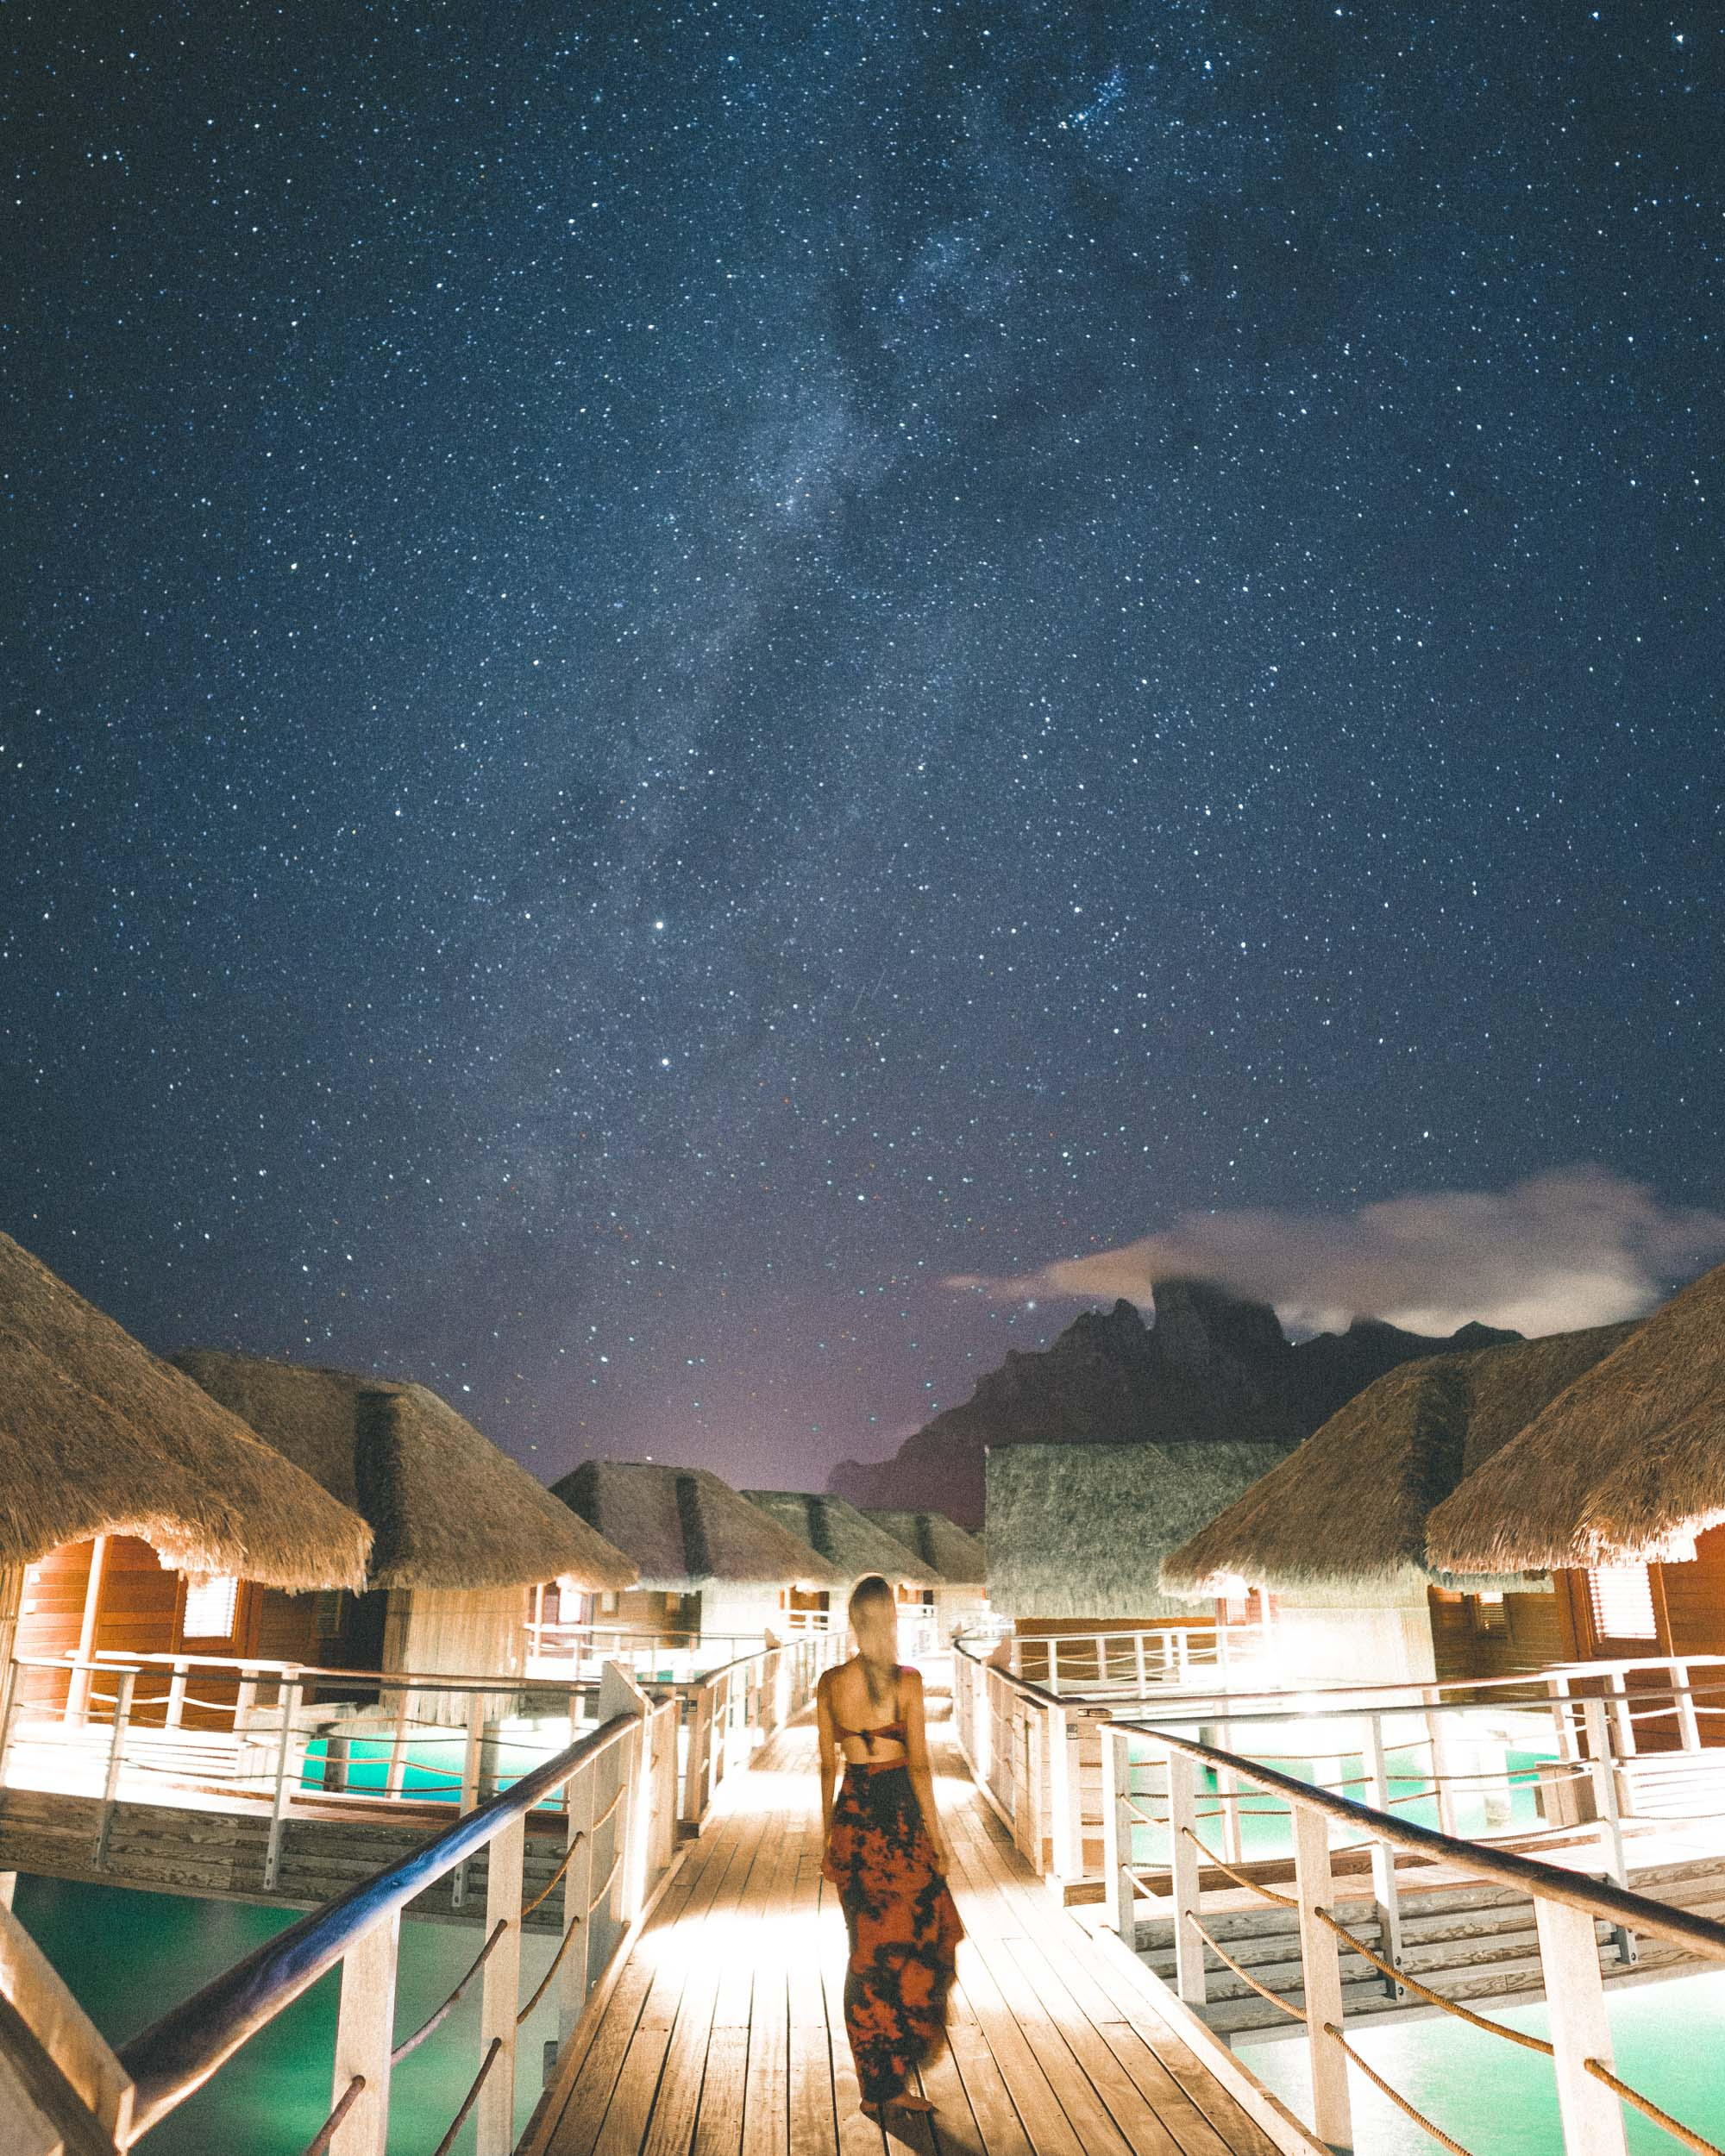 Starry sky in bora bora tahiti four seasons resort by Find Us Lost